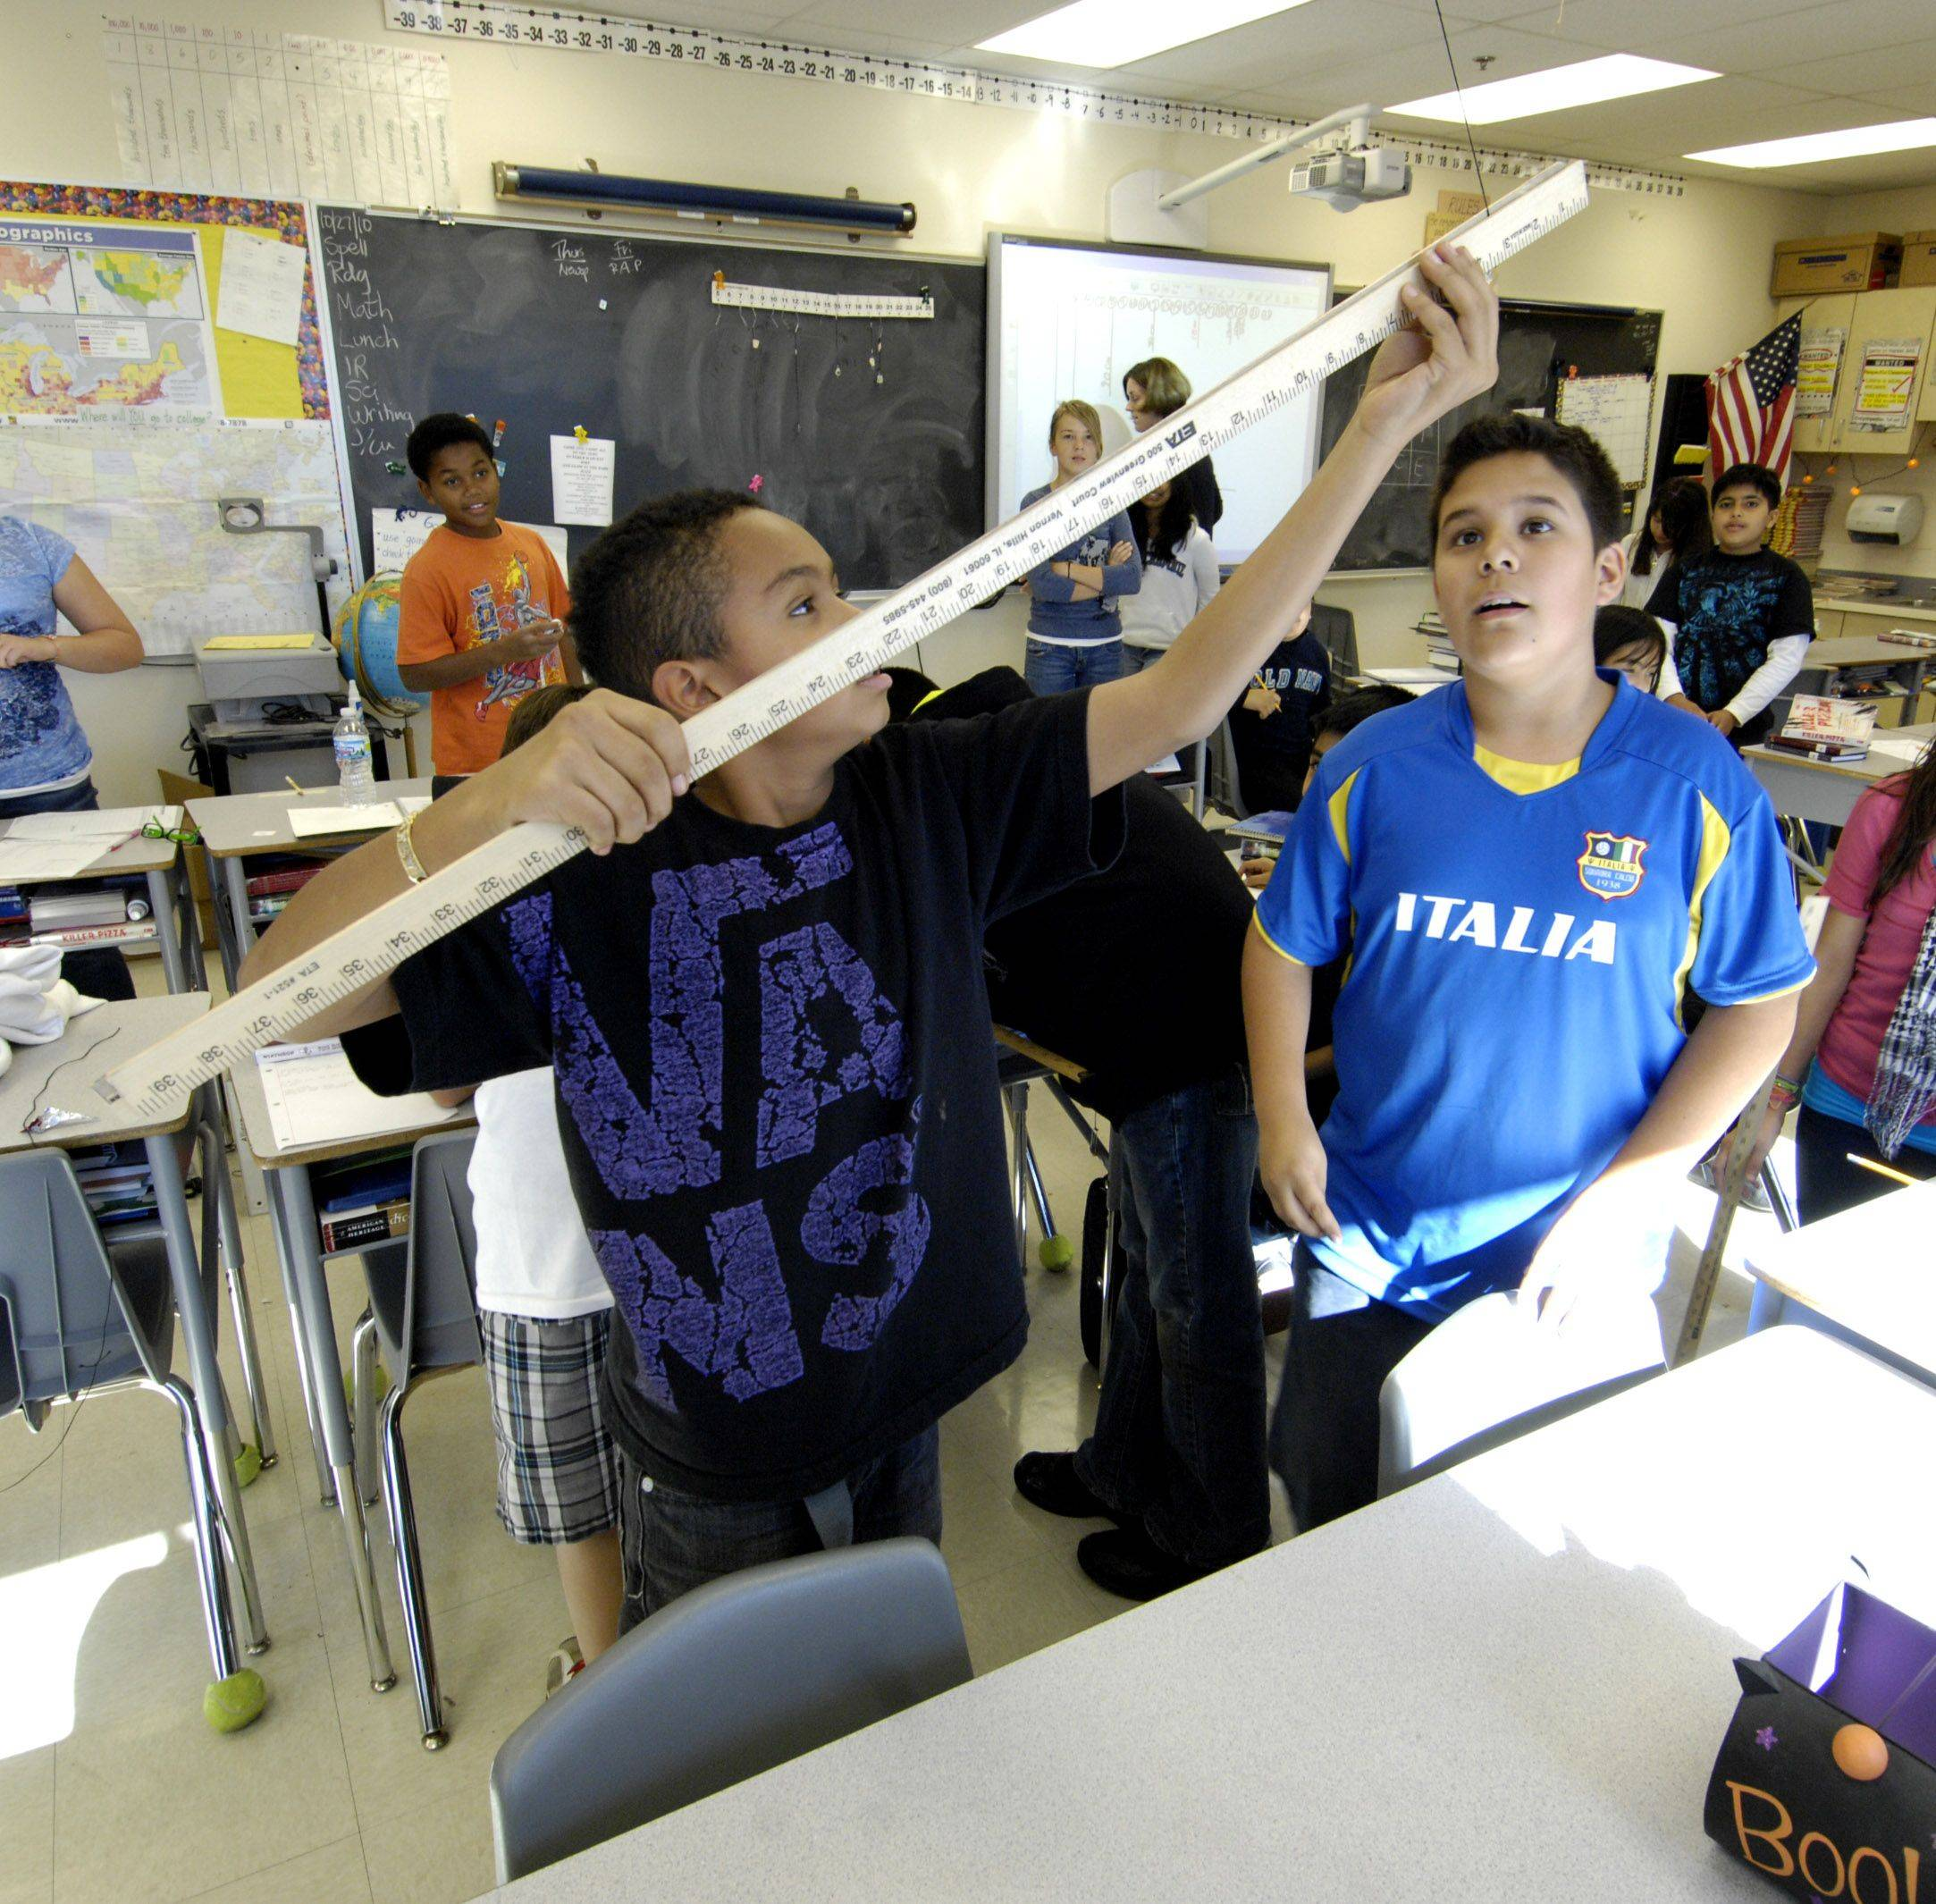 Sixth-graders Marcelino Sandoval and Jose Corona work on a project at Timber Trails Elementary School, an Elgin Area School District U-46 building in Hoffman Estates.